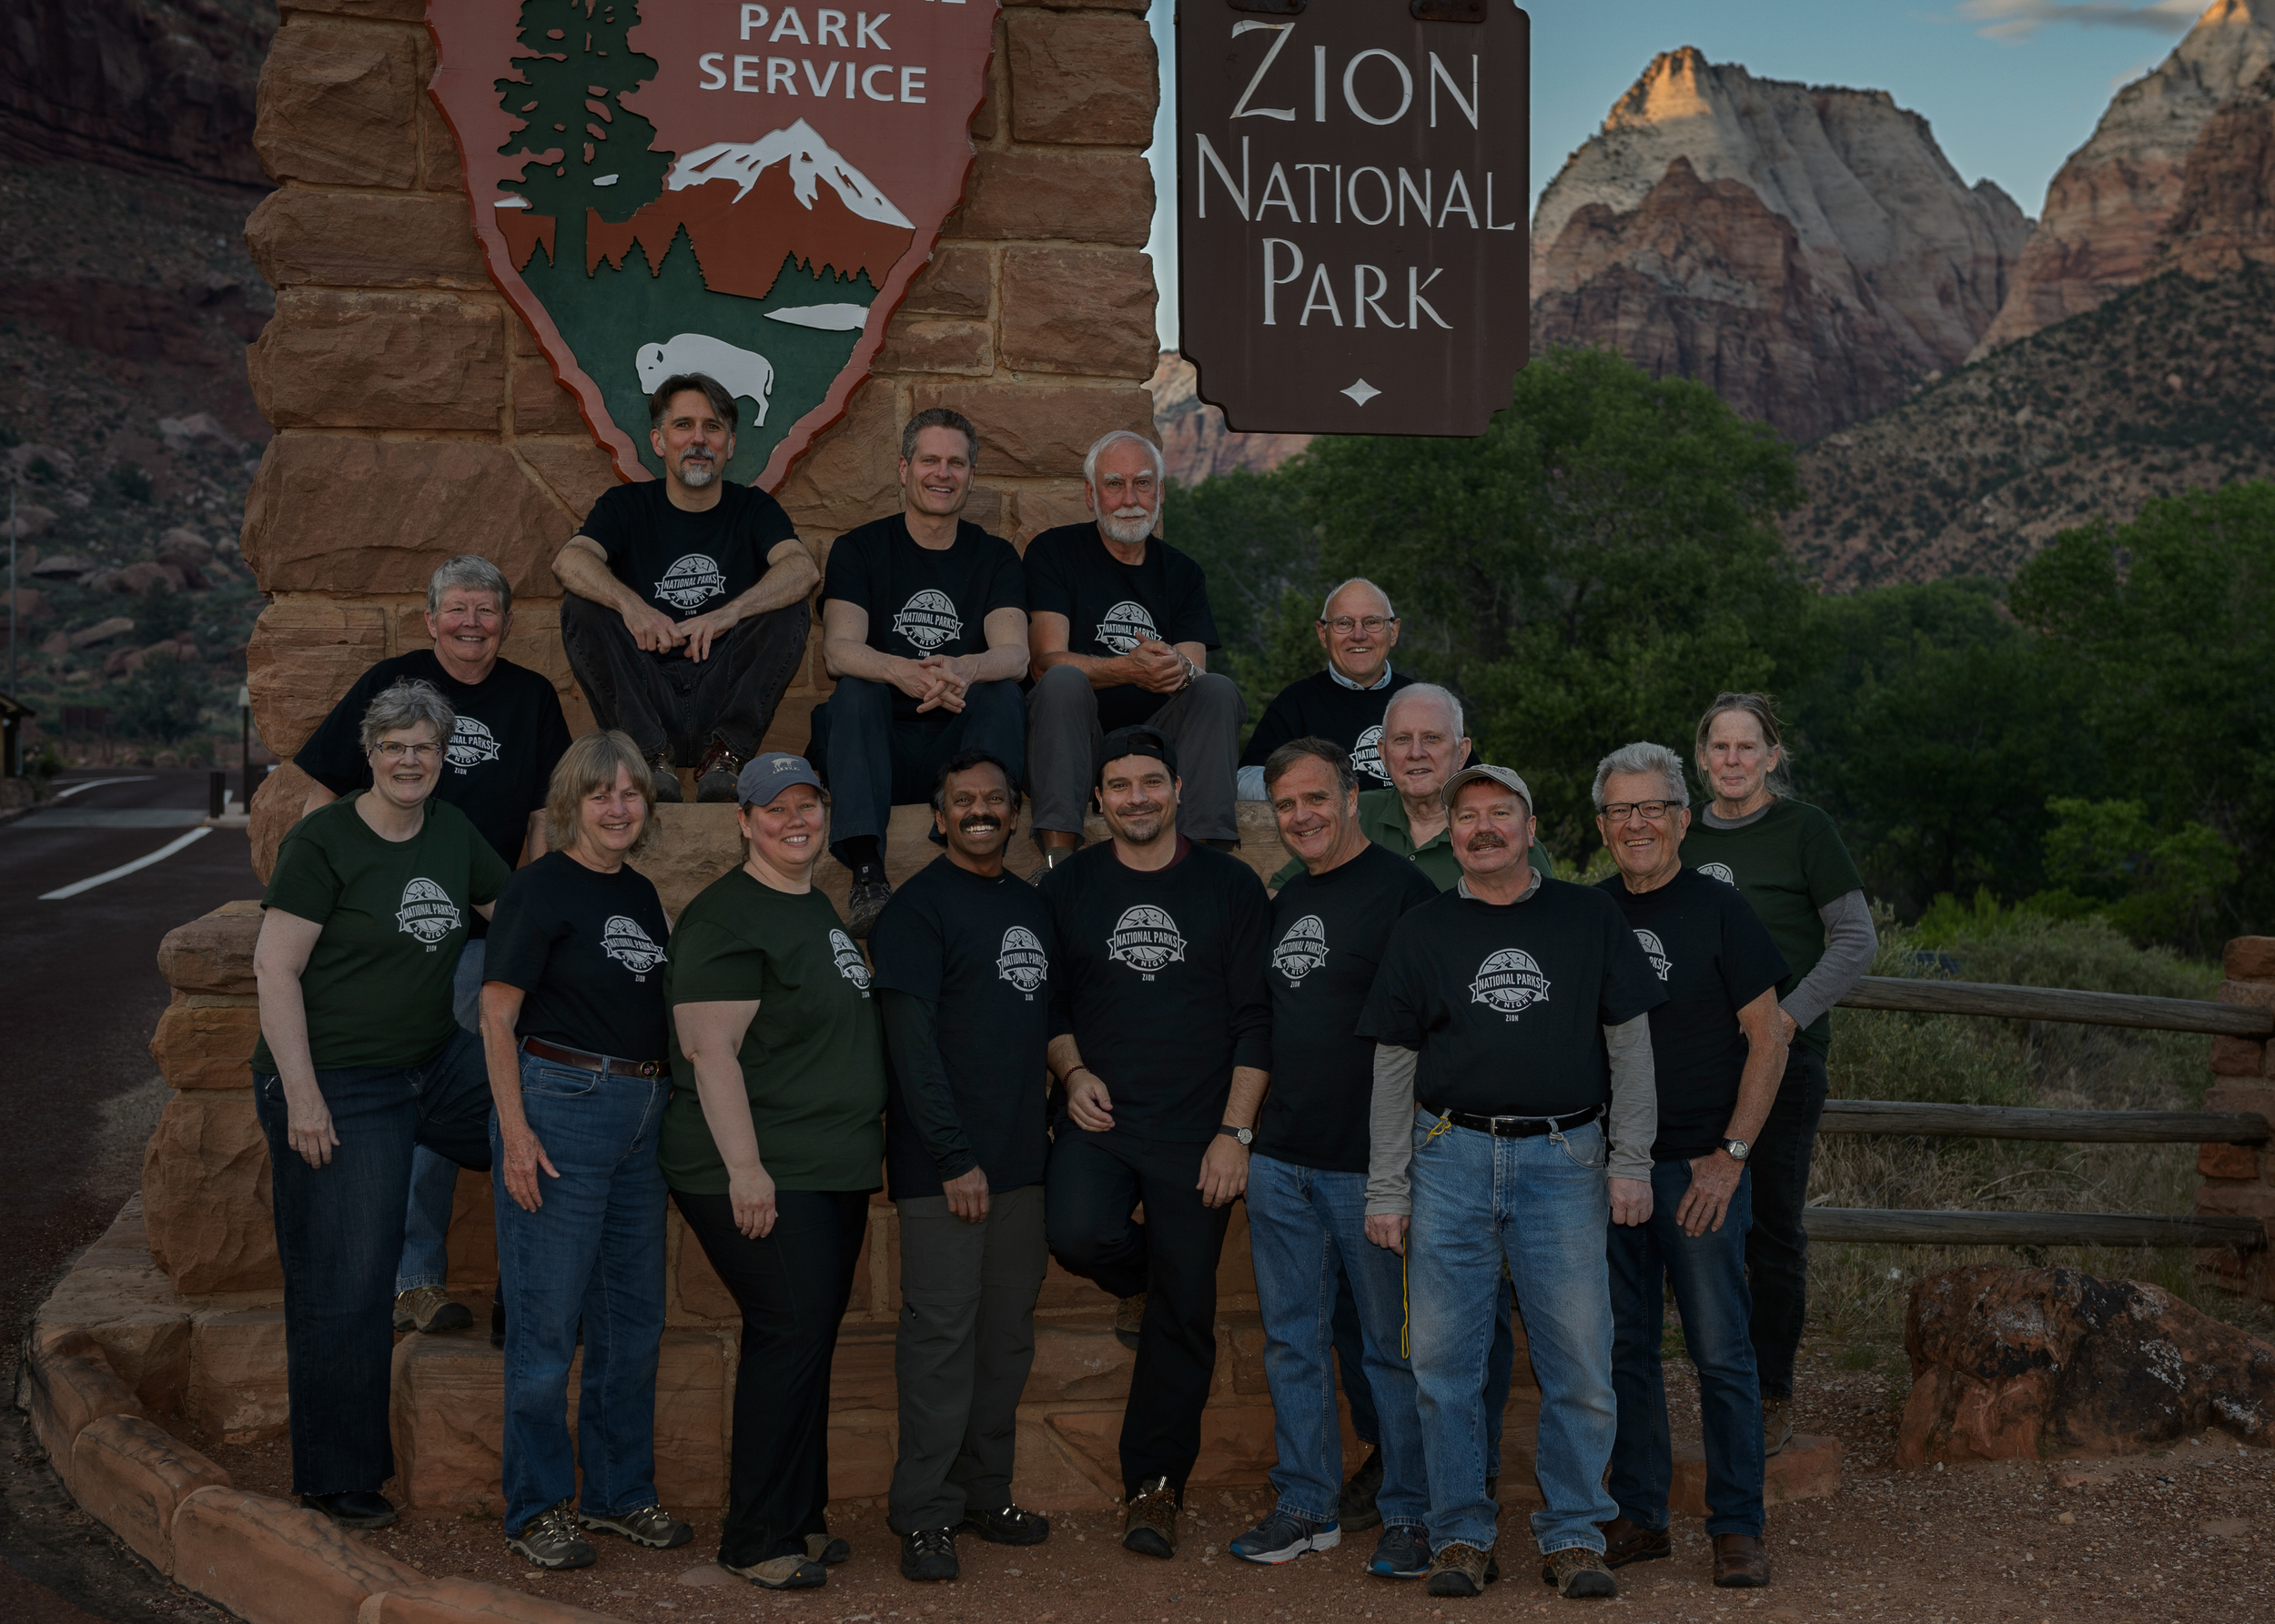 Zion-Group-Photo.jpg